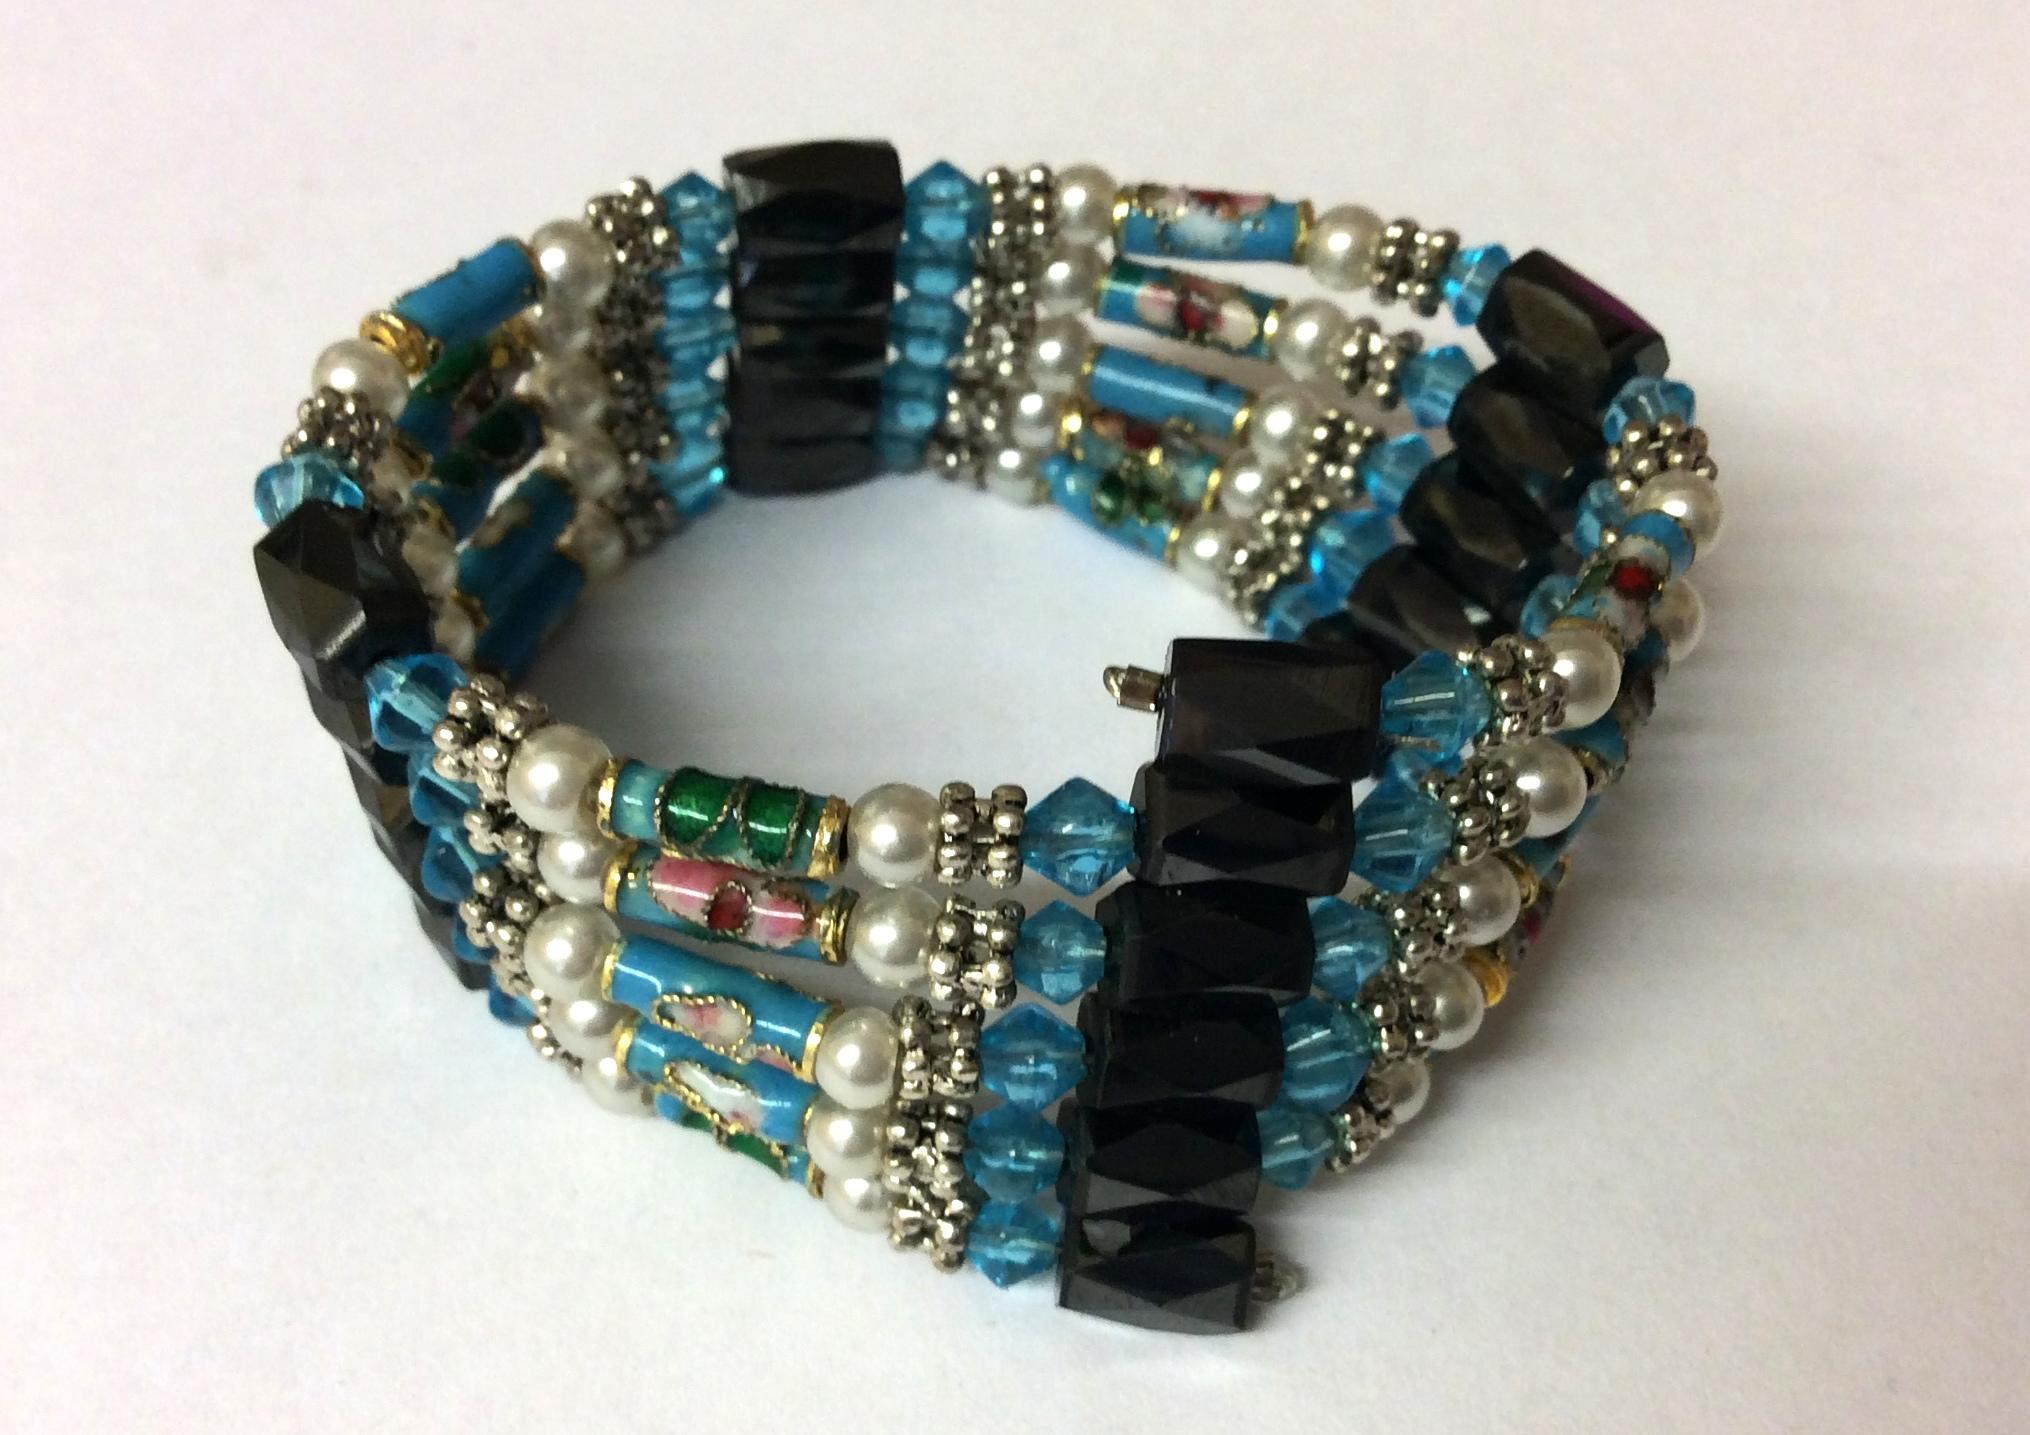 Magnetic Hematite Wrap Around Bracelet Light Blue